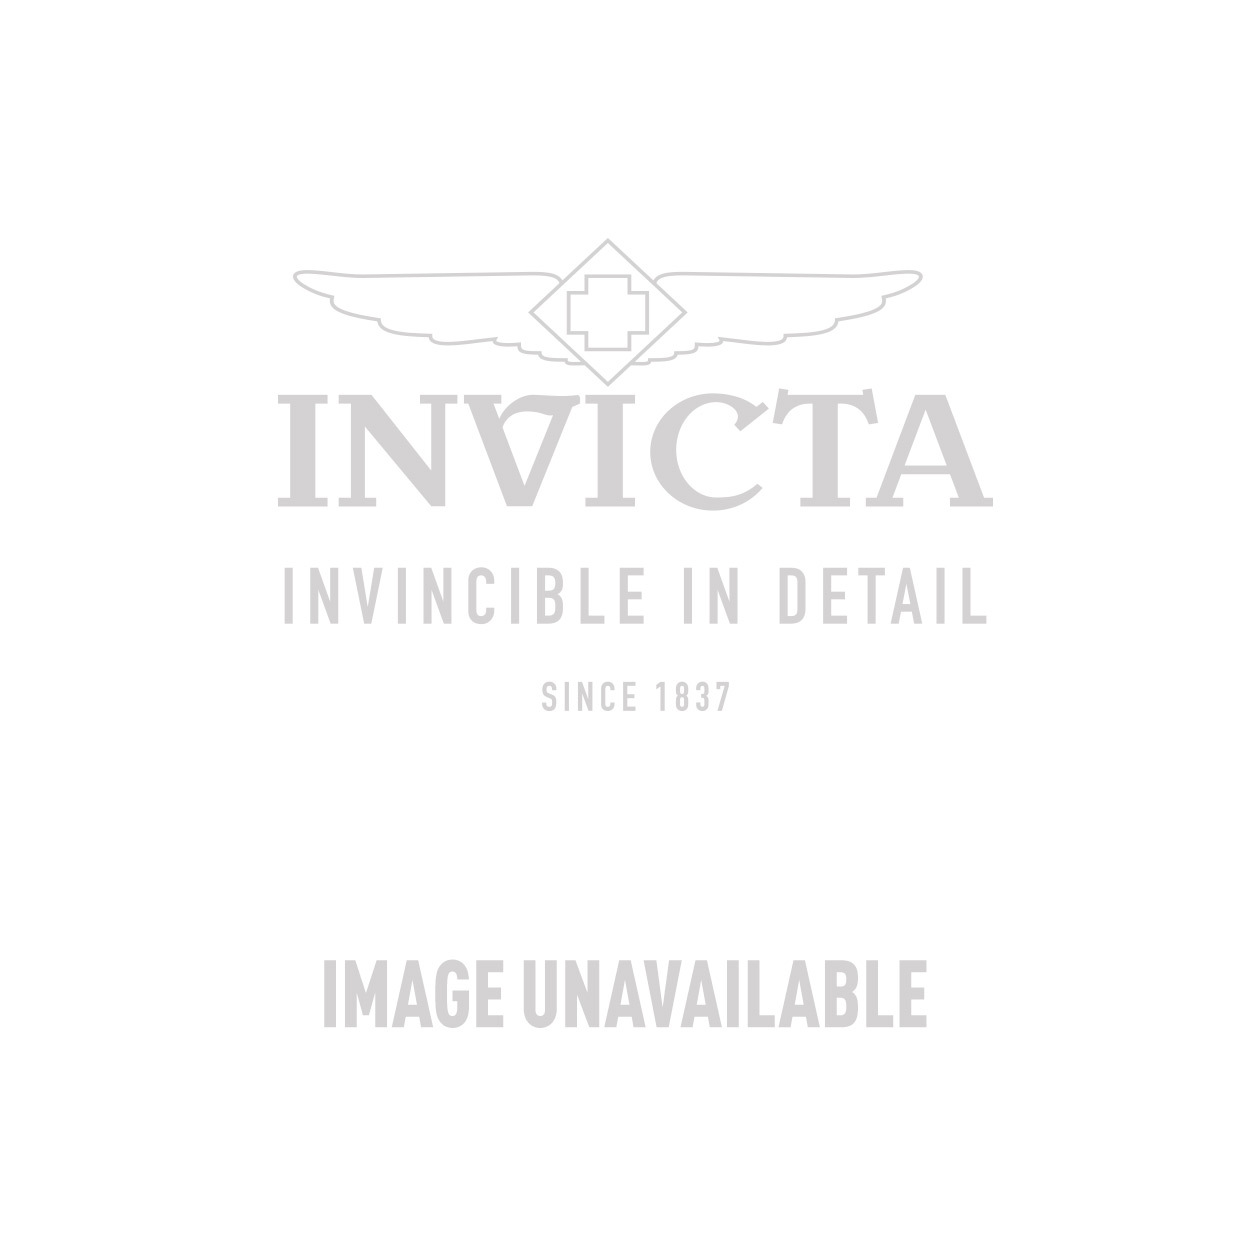 Invicta S. Coifman Swiss Movement Quartz Watch - Stainless Steel case Stainless Steel band - Model SC0340